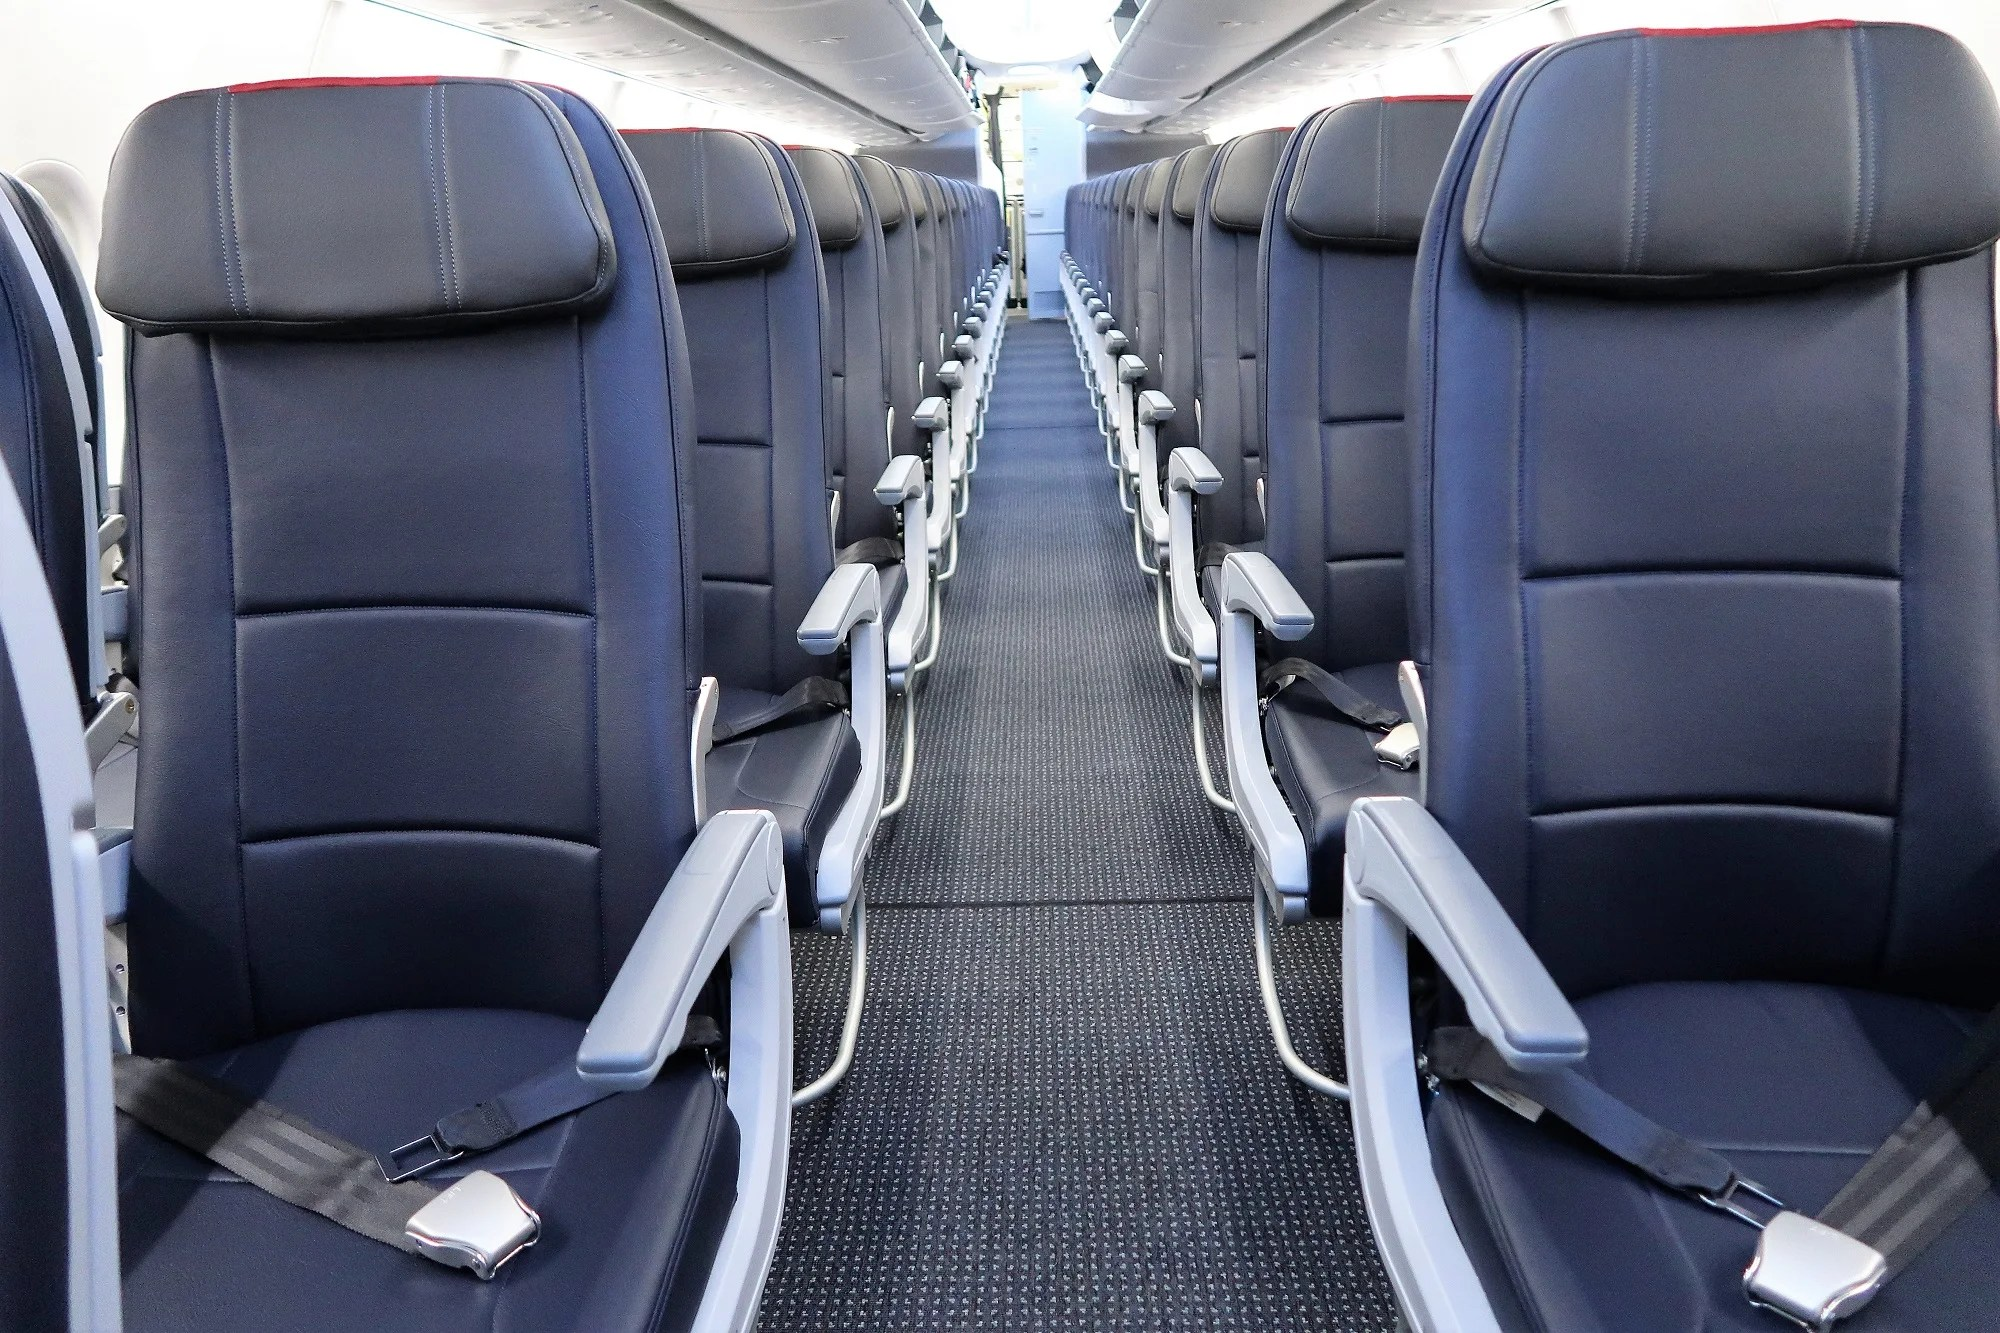 A First Look Inside American Airlines Boeing 737 Max 8